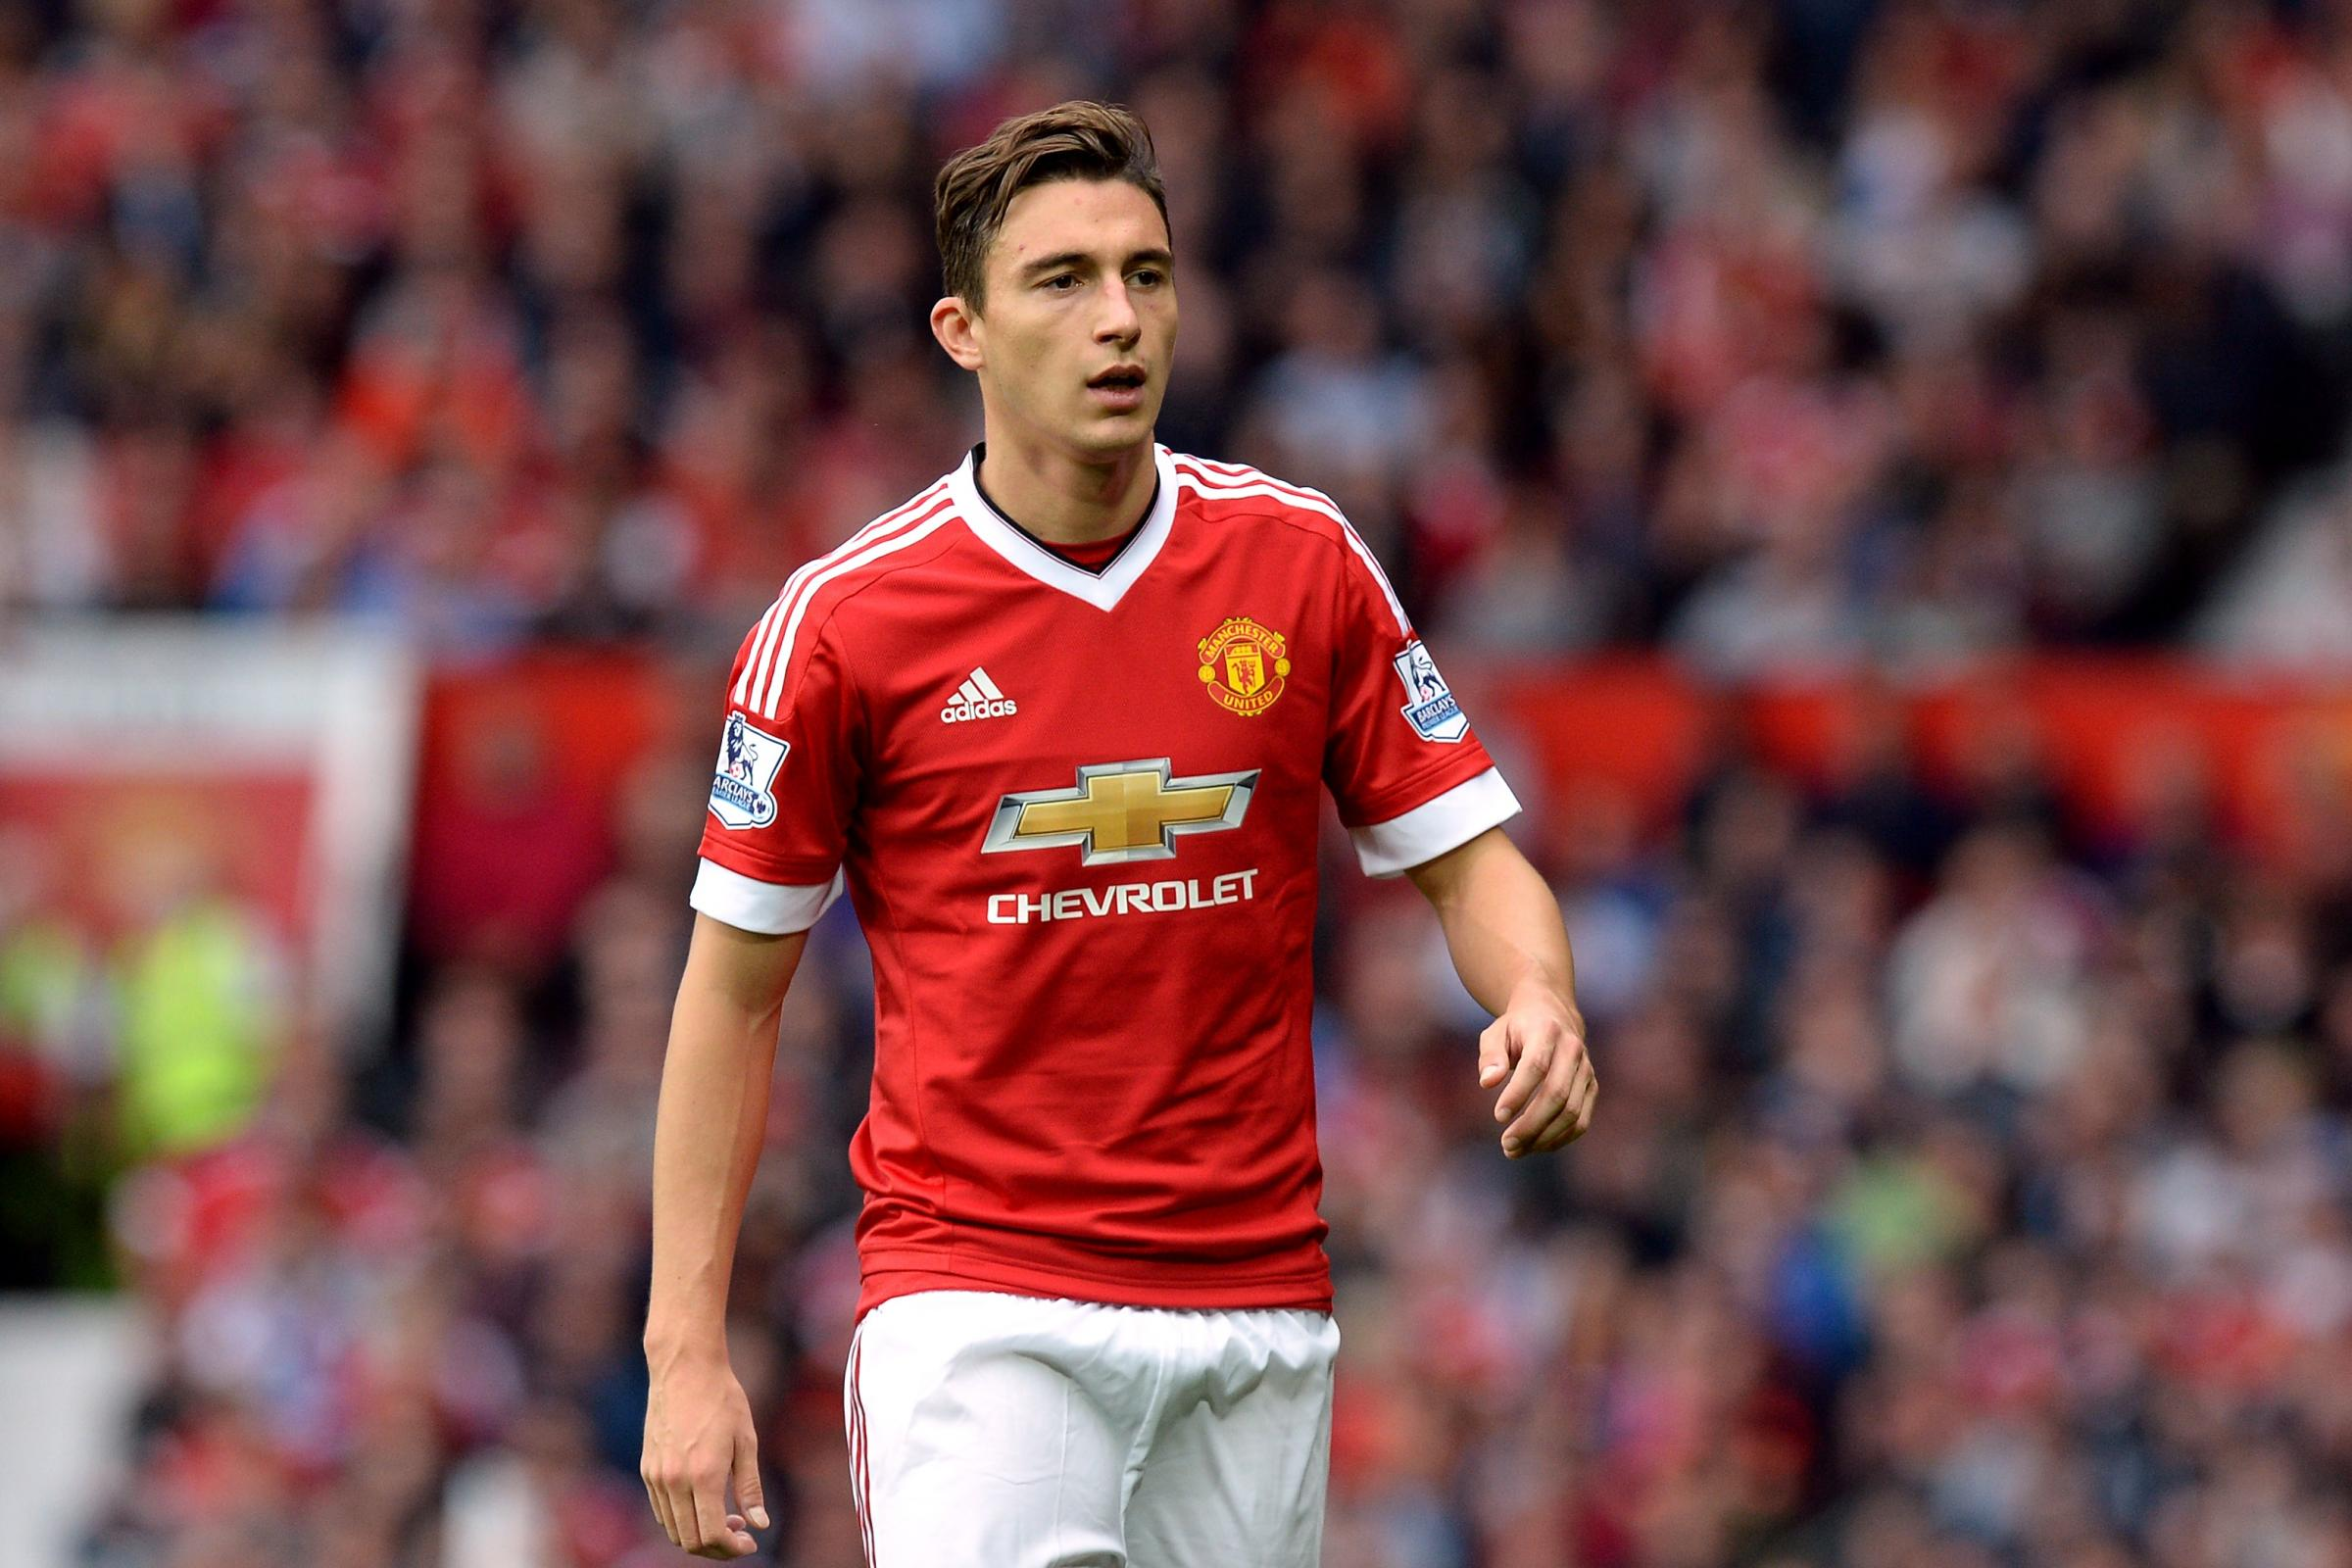 Napoli interest in Manchester United's Matteo Darmian confirmed by president